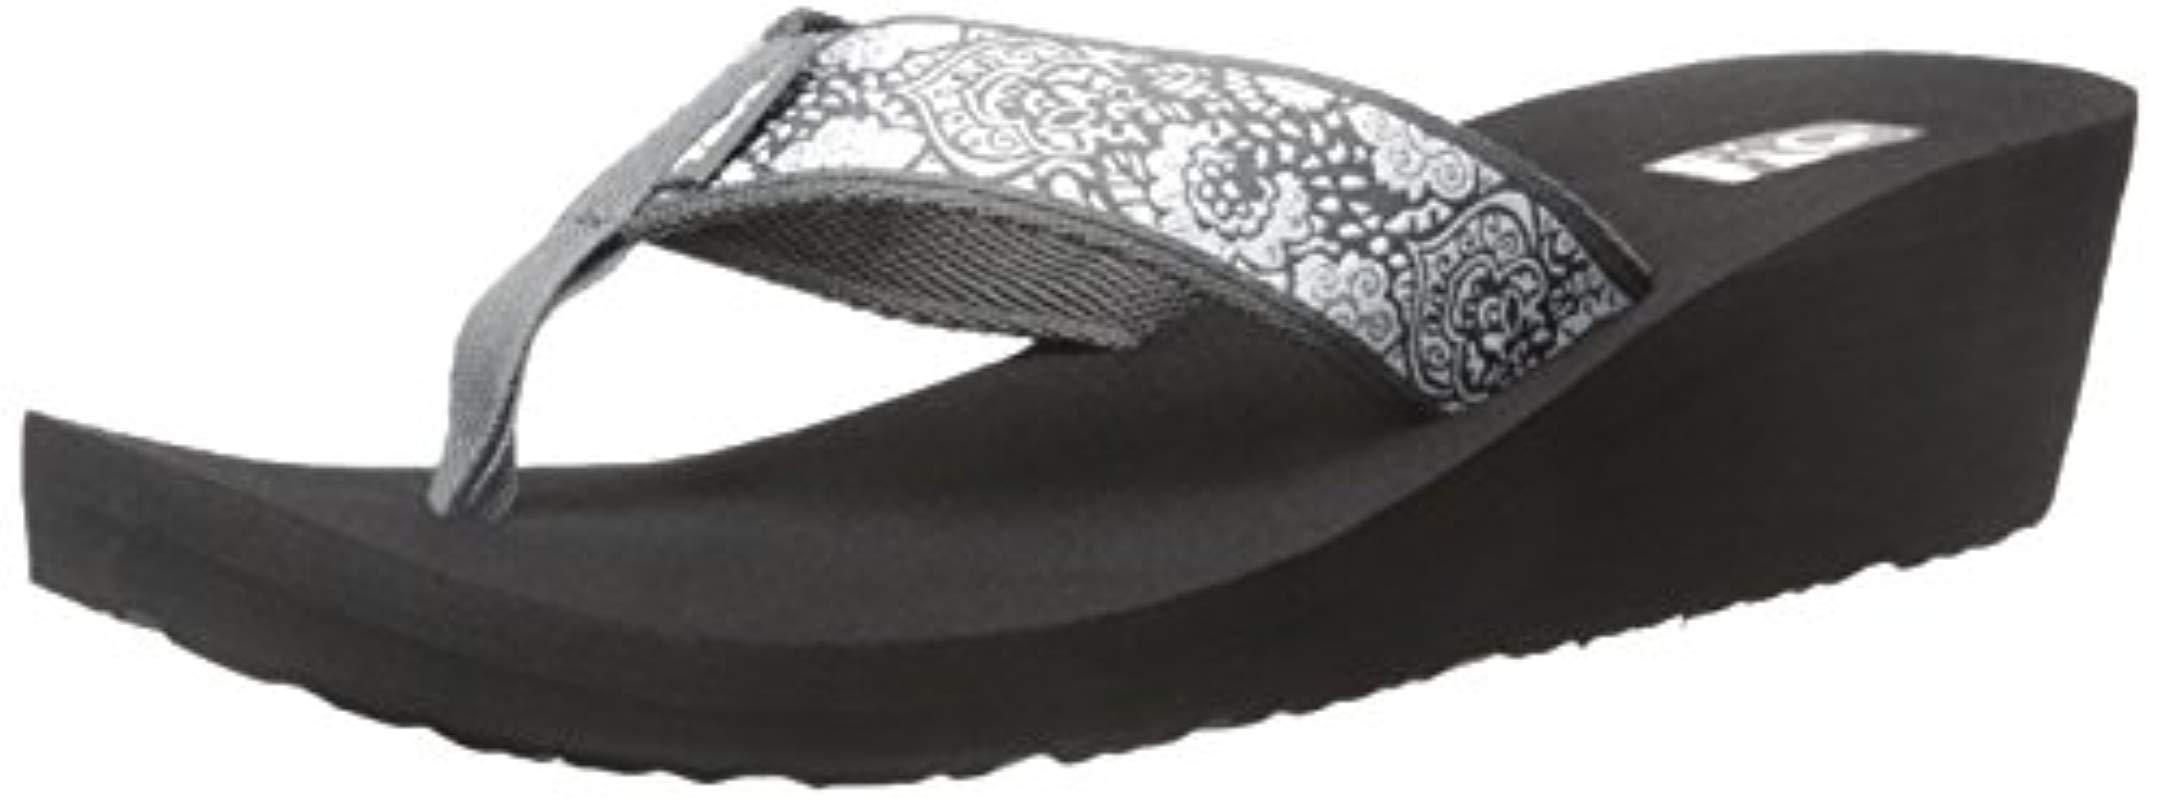 9d85753e2 Lyst - Teva Mush Mandalyn Wedge 2- Pack Sandal in Black